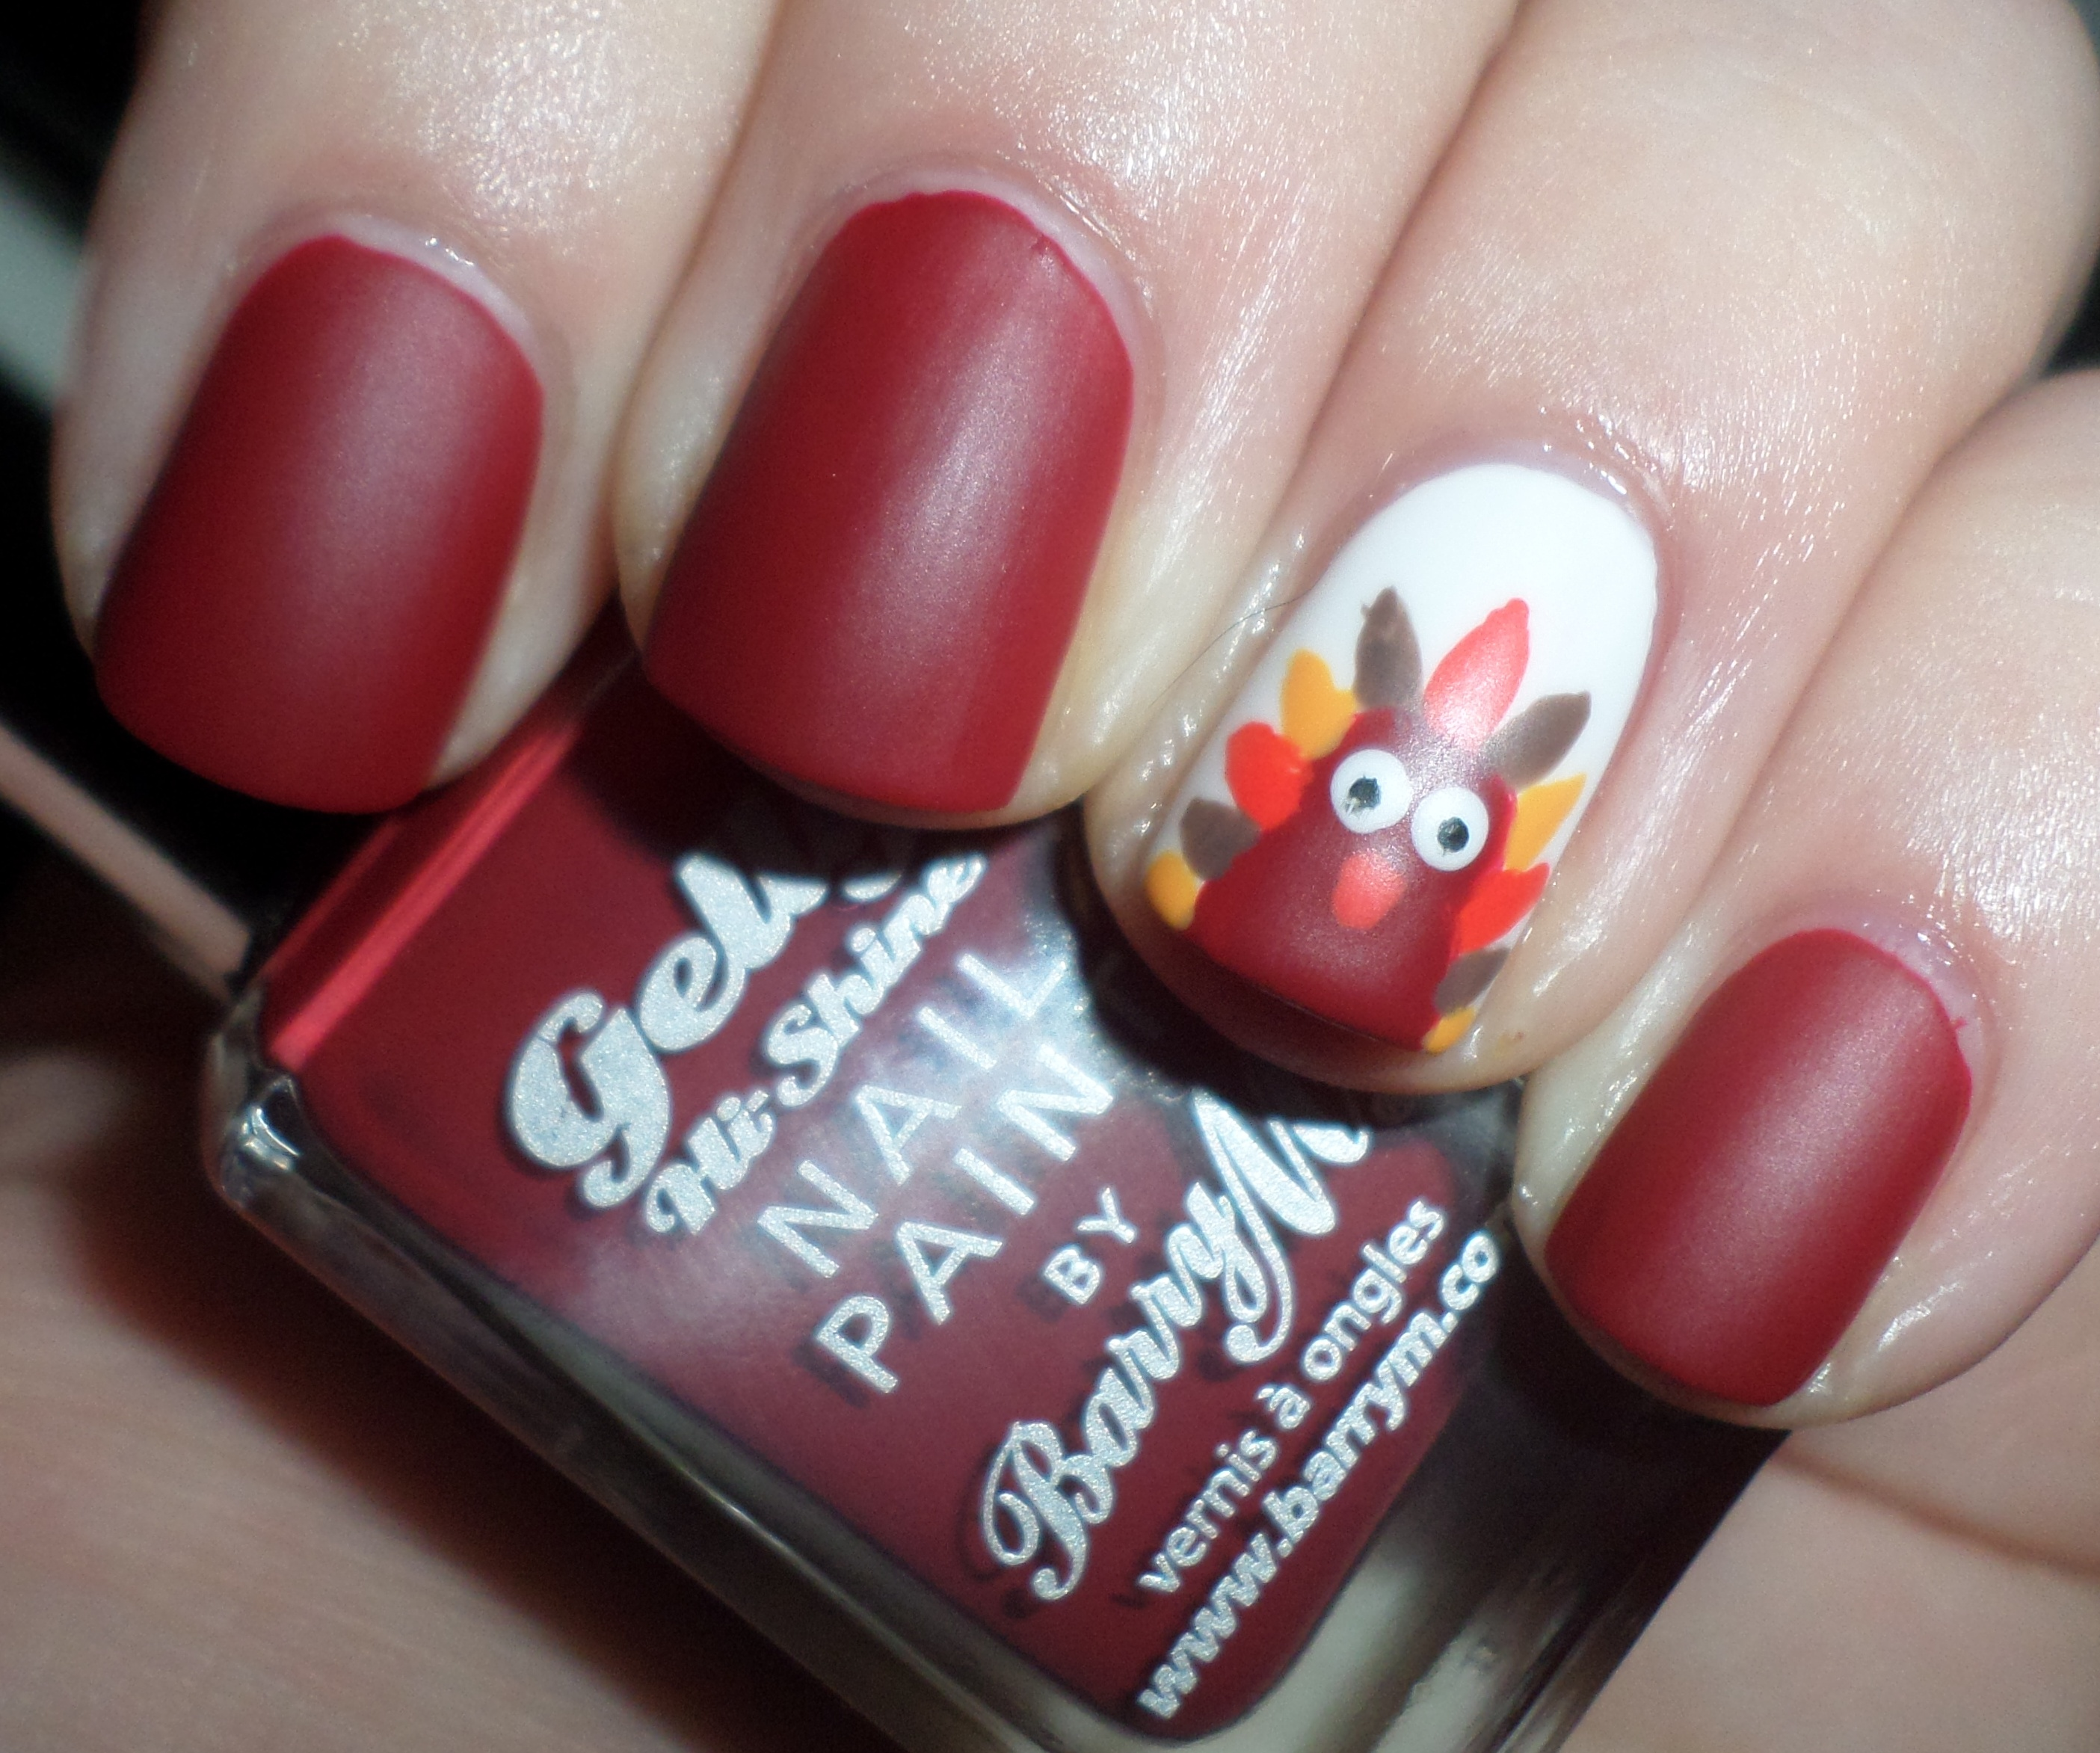 Festive thanksgiving nail designs from mane n tail photo courtesy of raraeid prinsesfo Choice Image